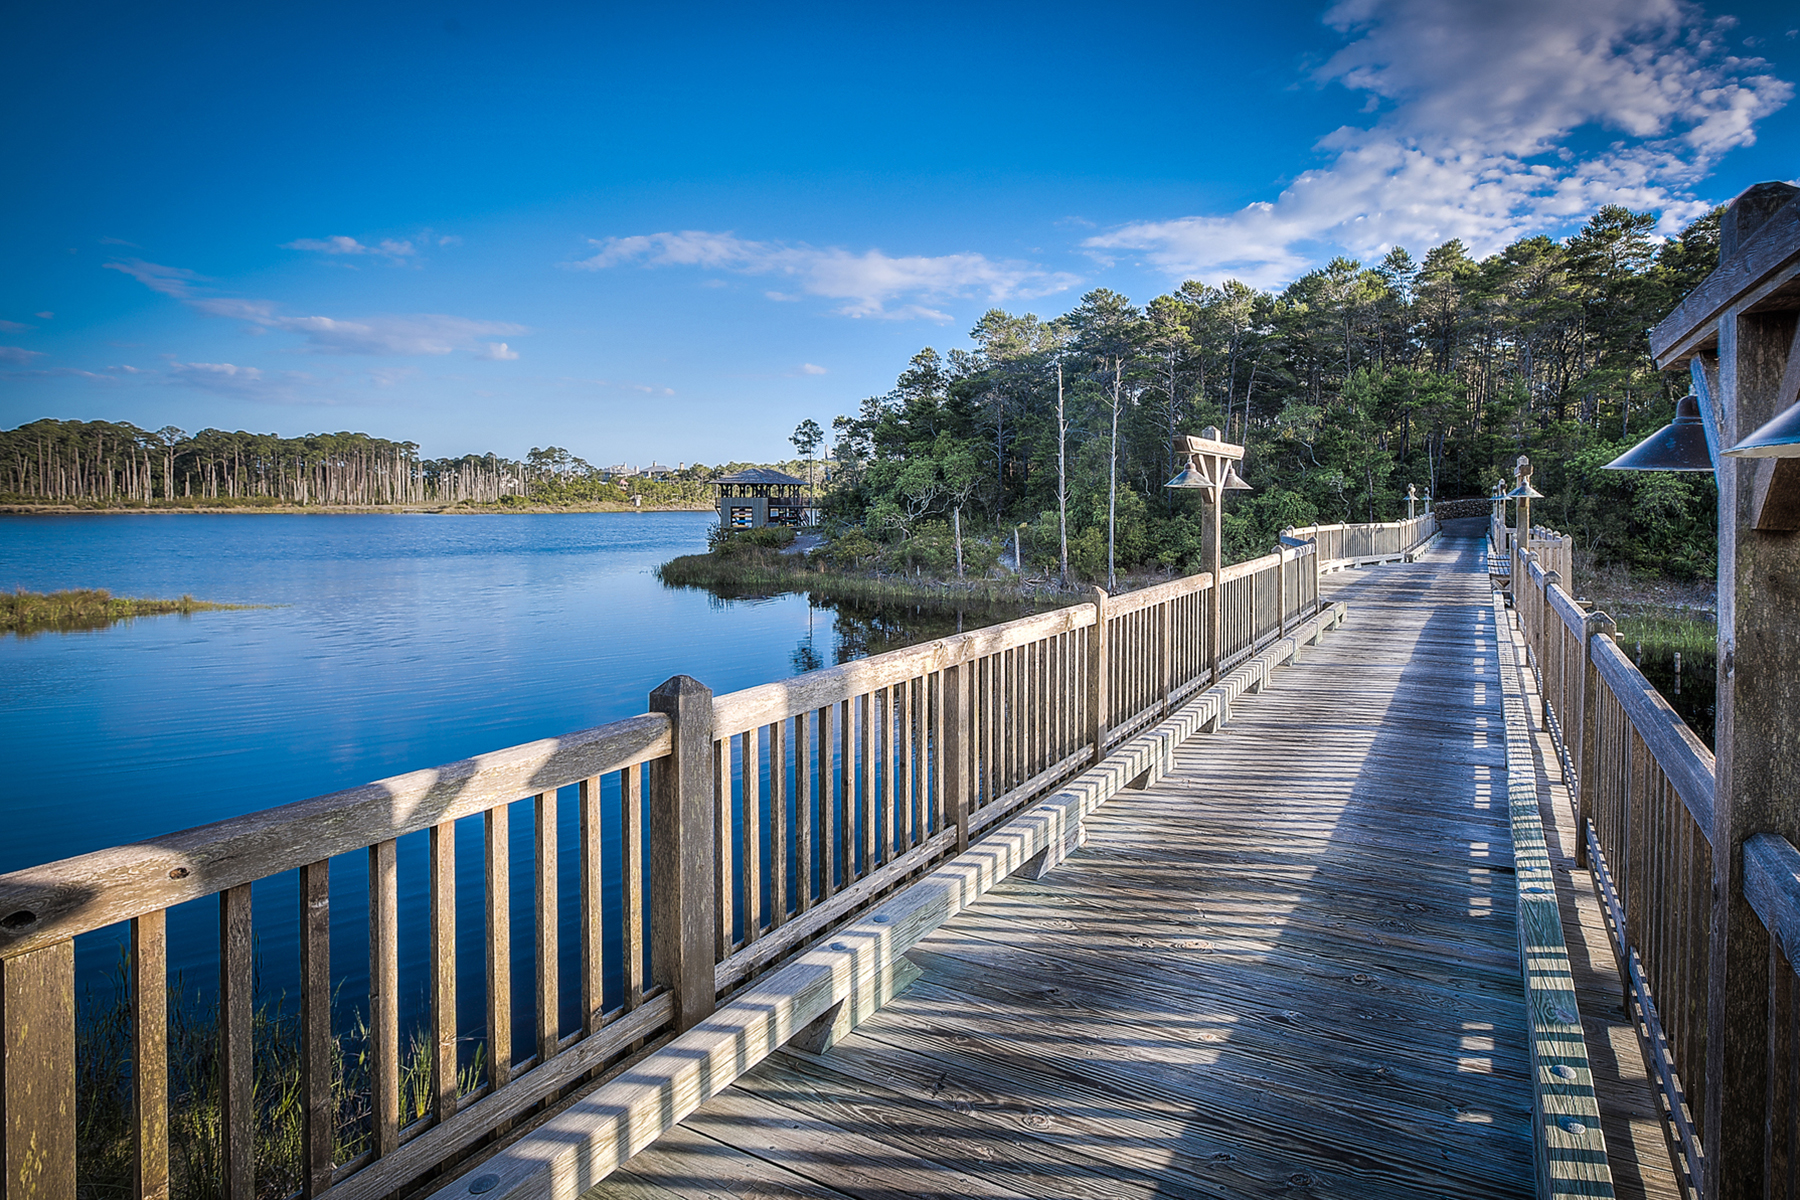 Land for Sale at Scenic Lake House Homesite for Draper Lake Coastal Village Lot 2 Blk 7 Bridge Cove Lane, Santa Rosa Beach, Florida 32459 United States